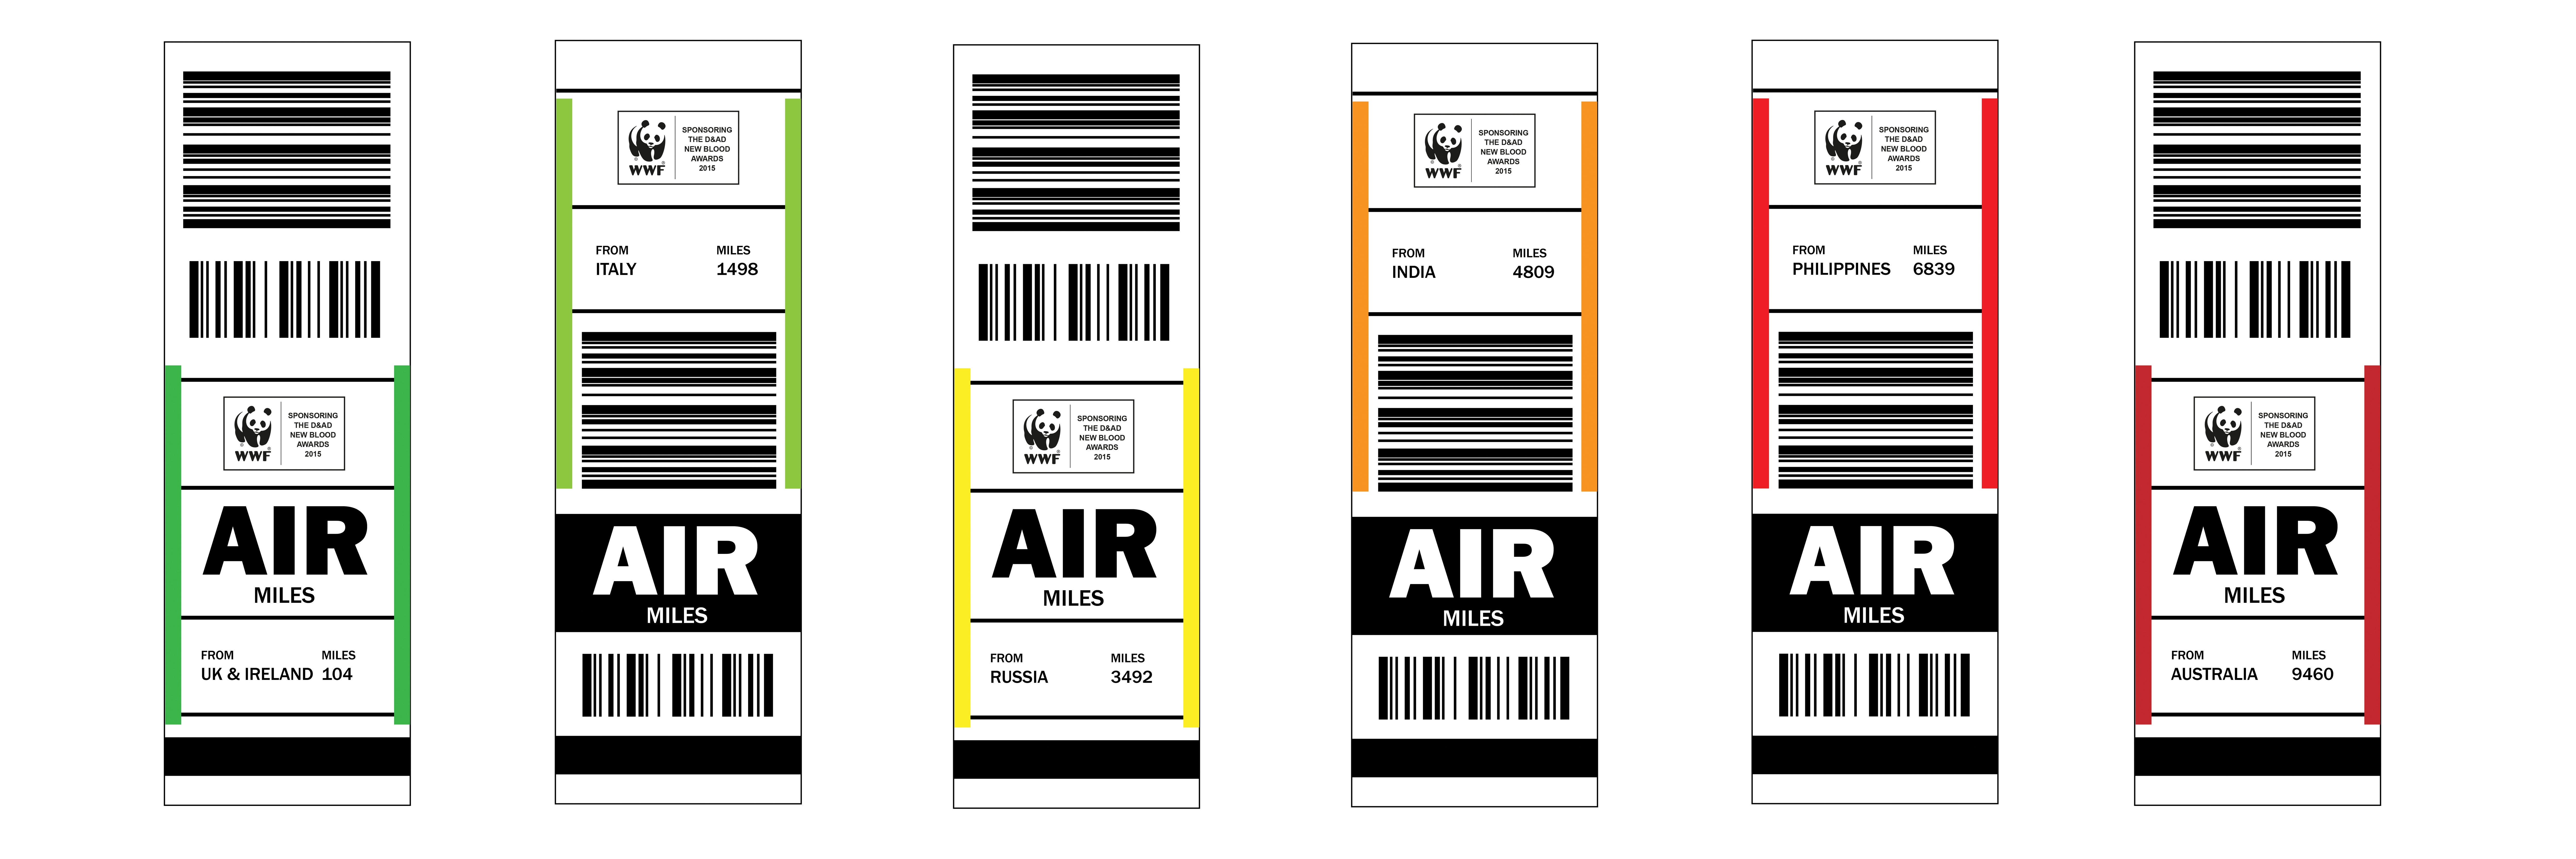 airline luggage tag template - wwf air miles simon andrew designs